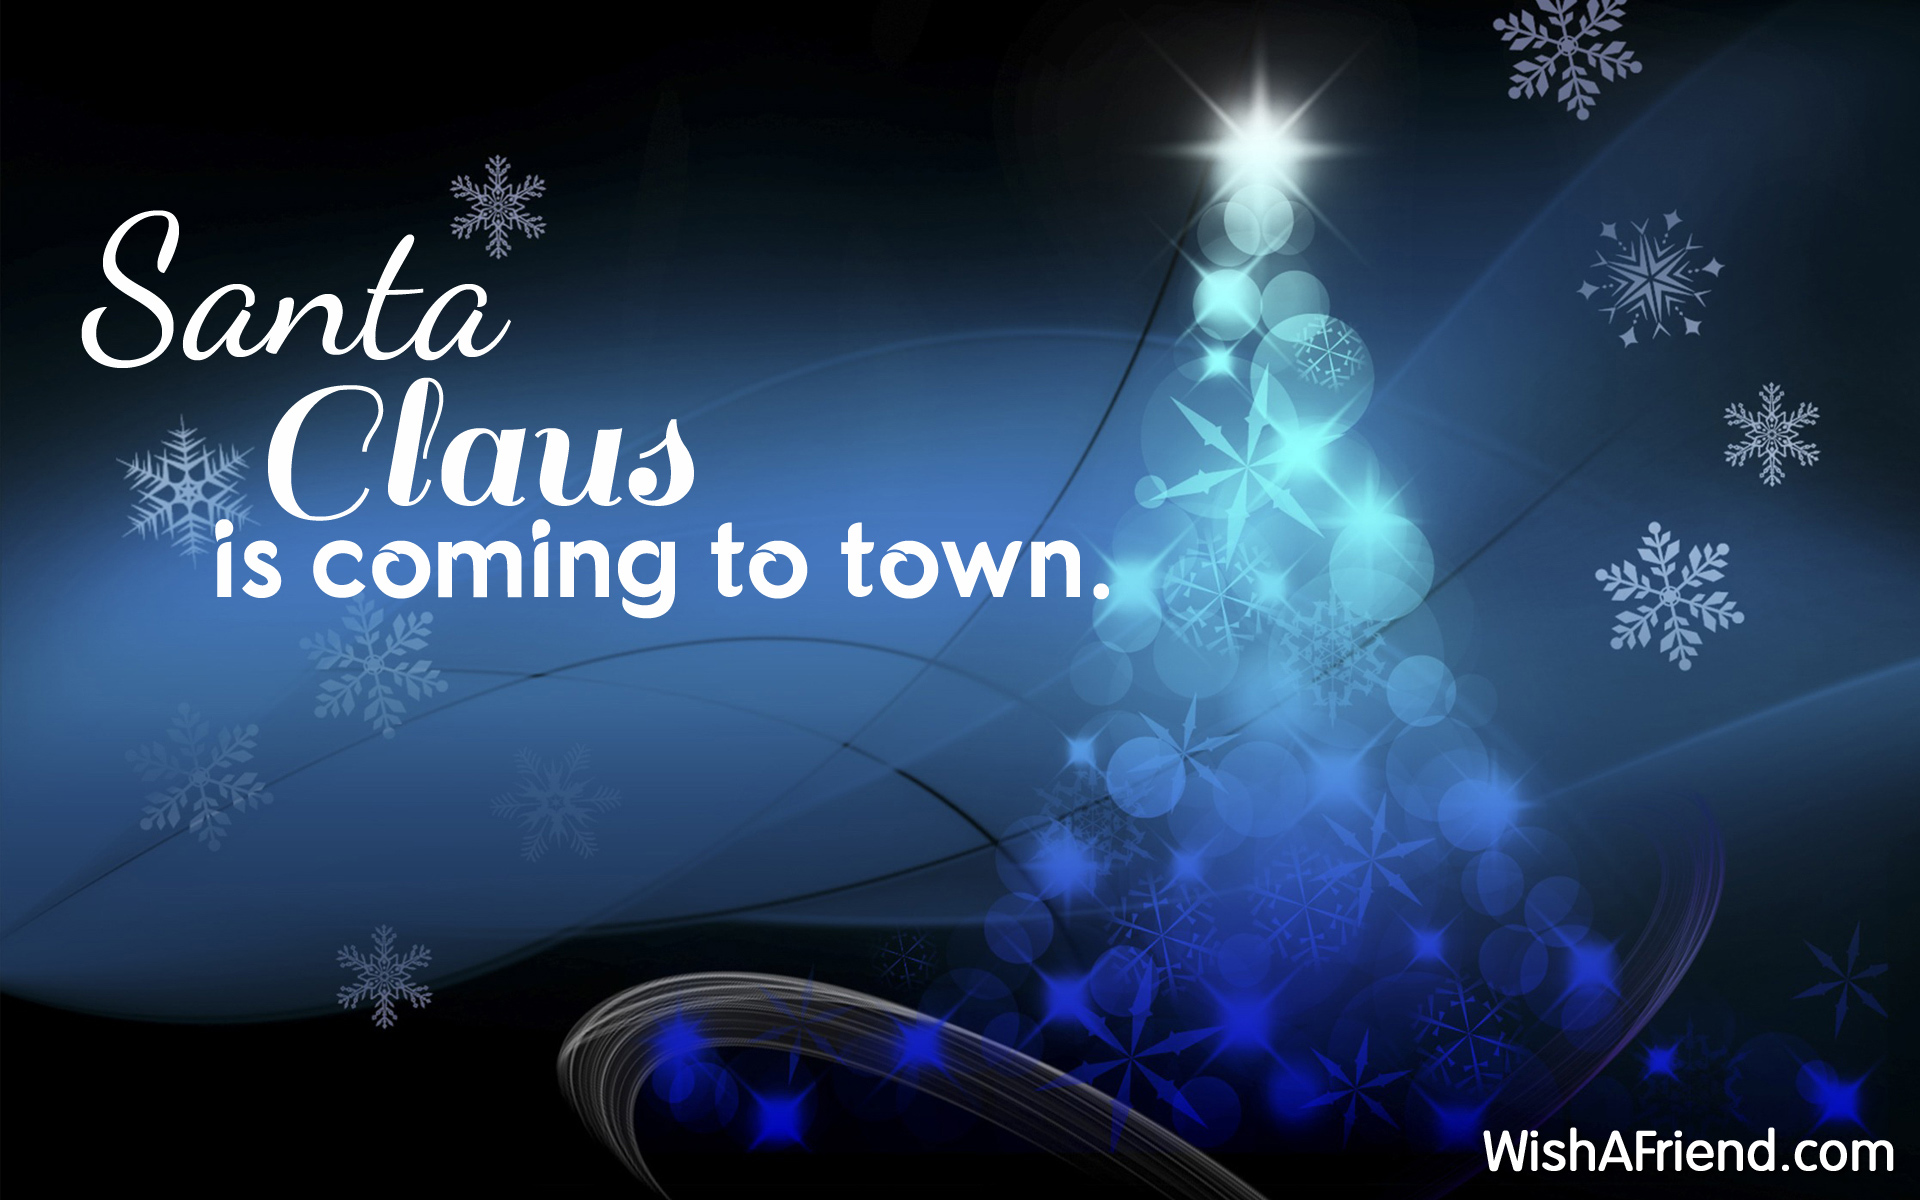 Santa Clous is coming to